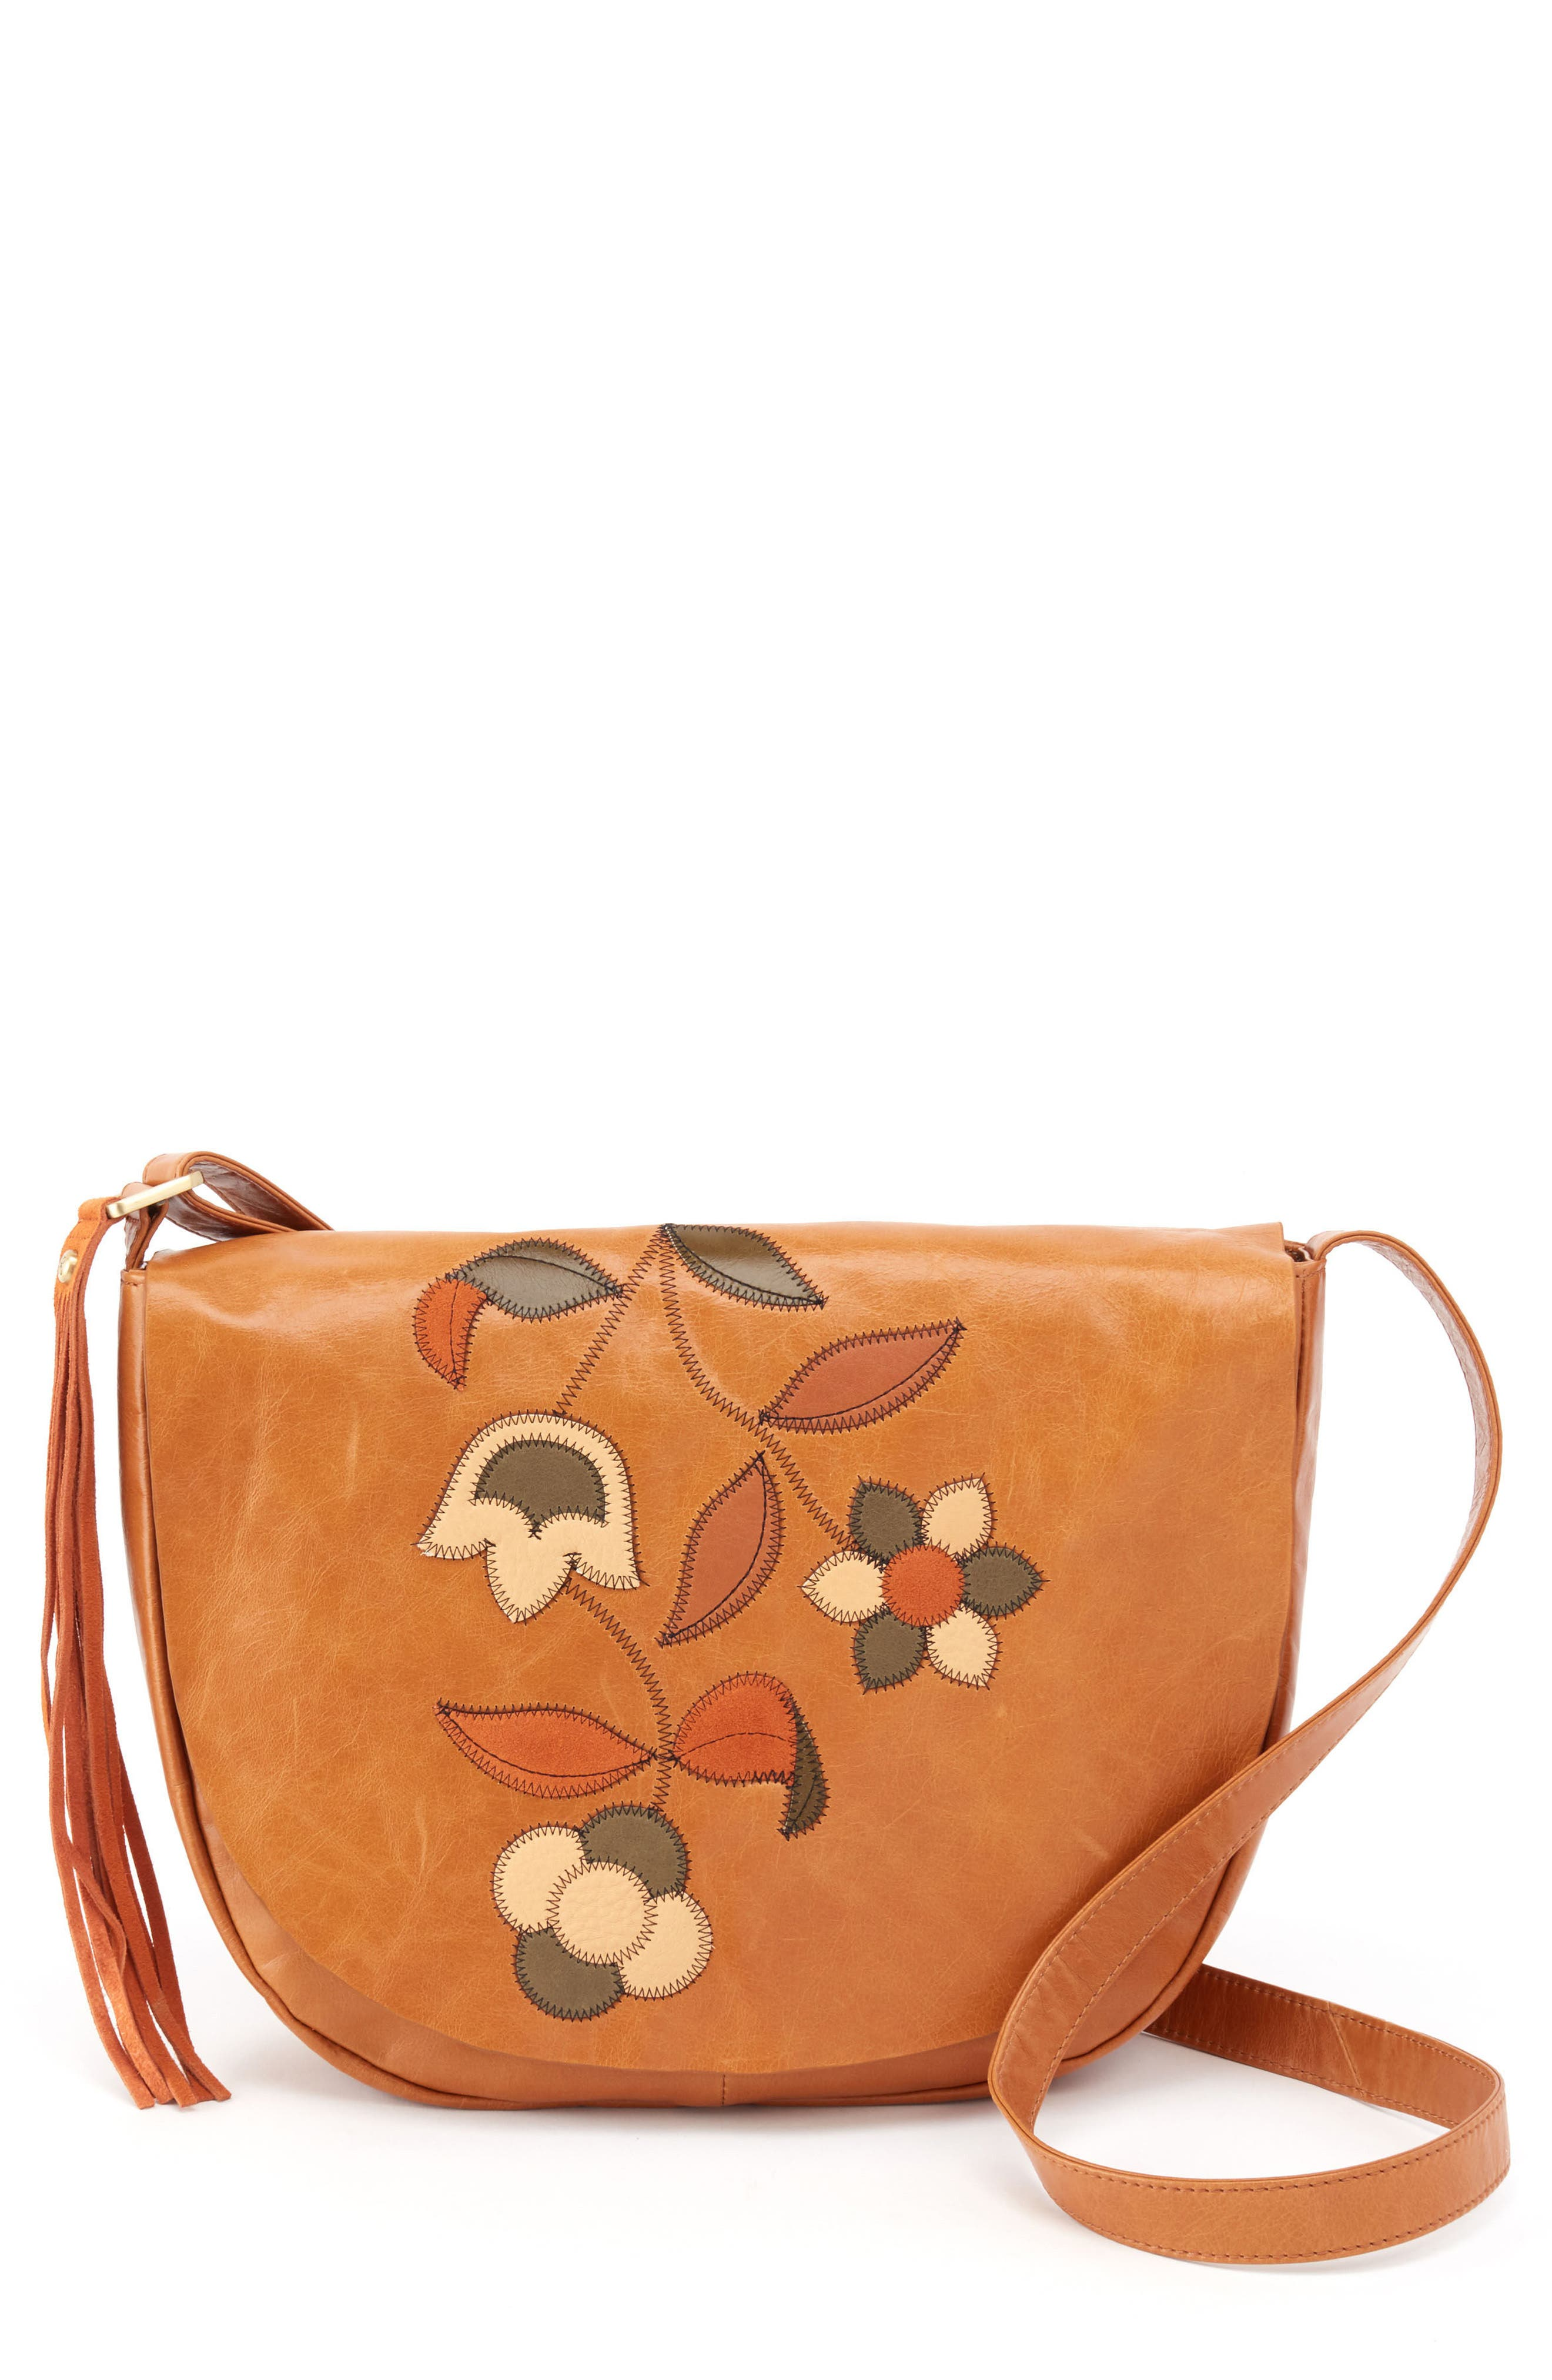 Hobo Maverick Floral Appliqué Leather Crossbody Bag